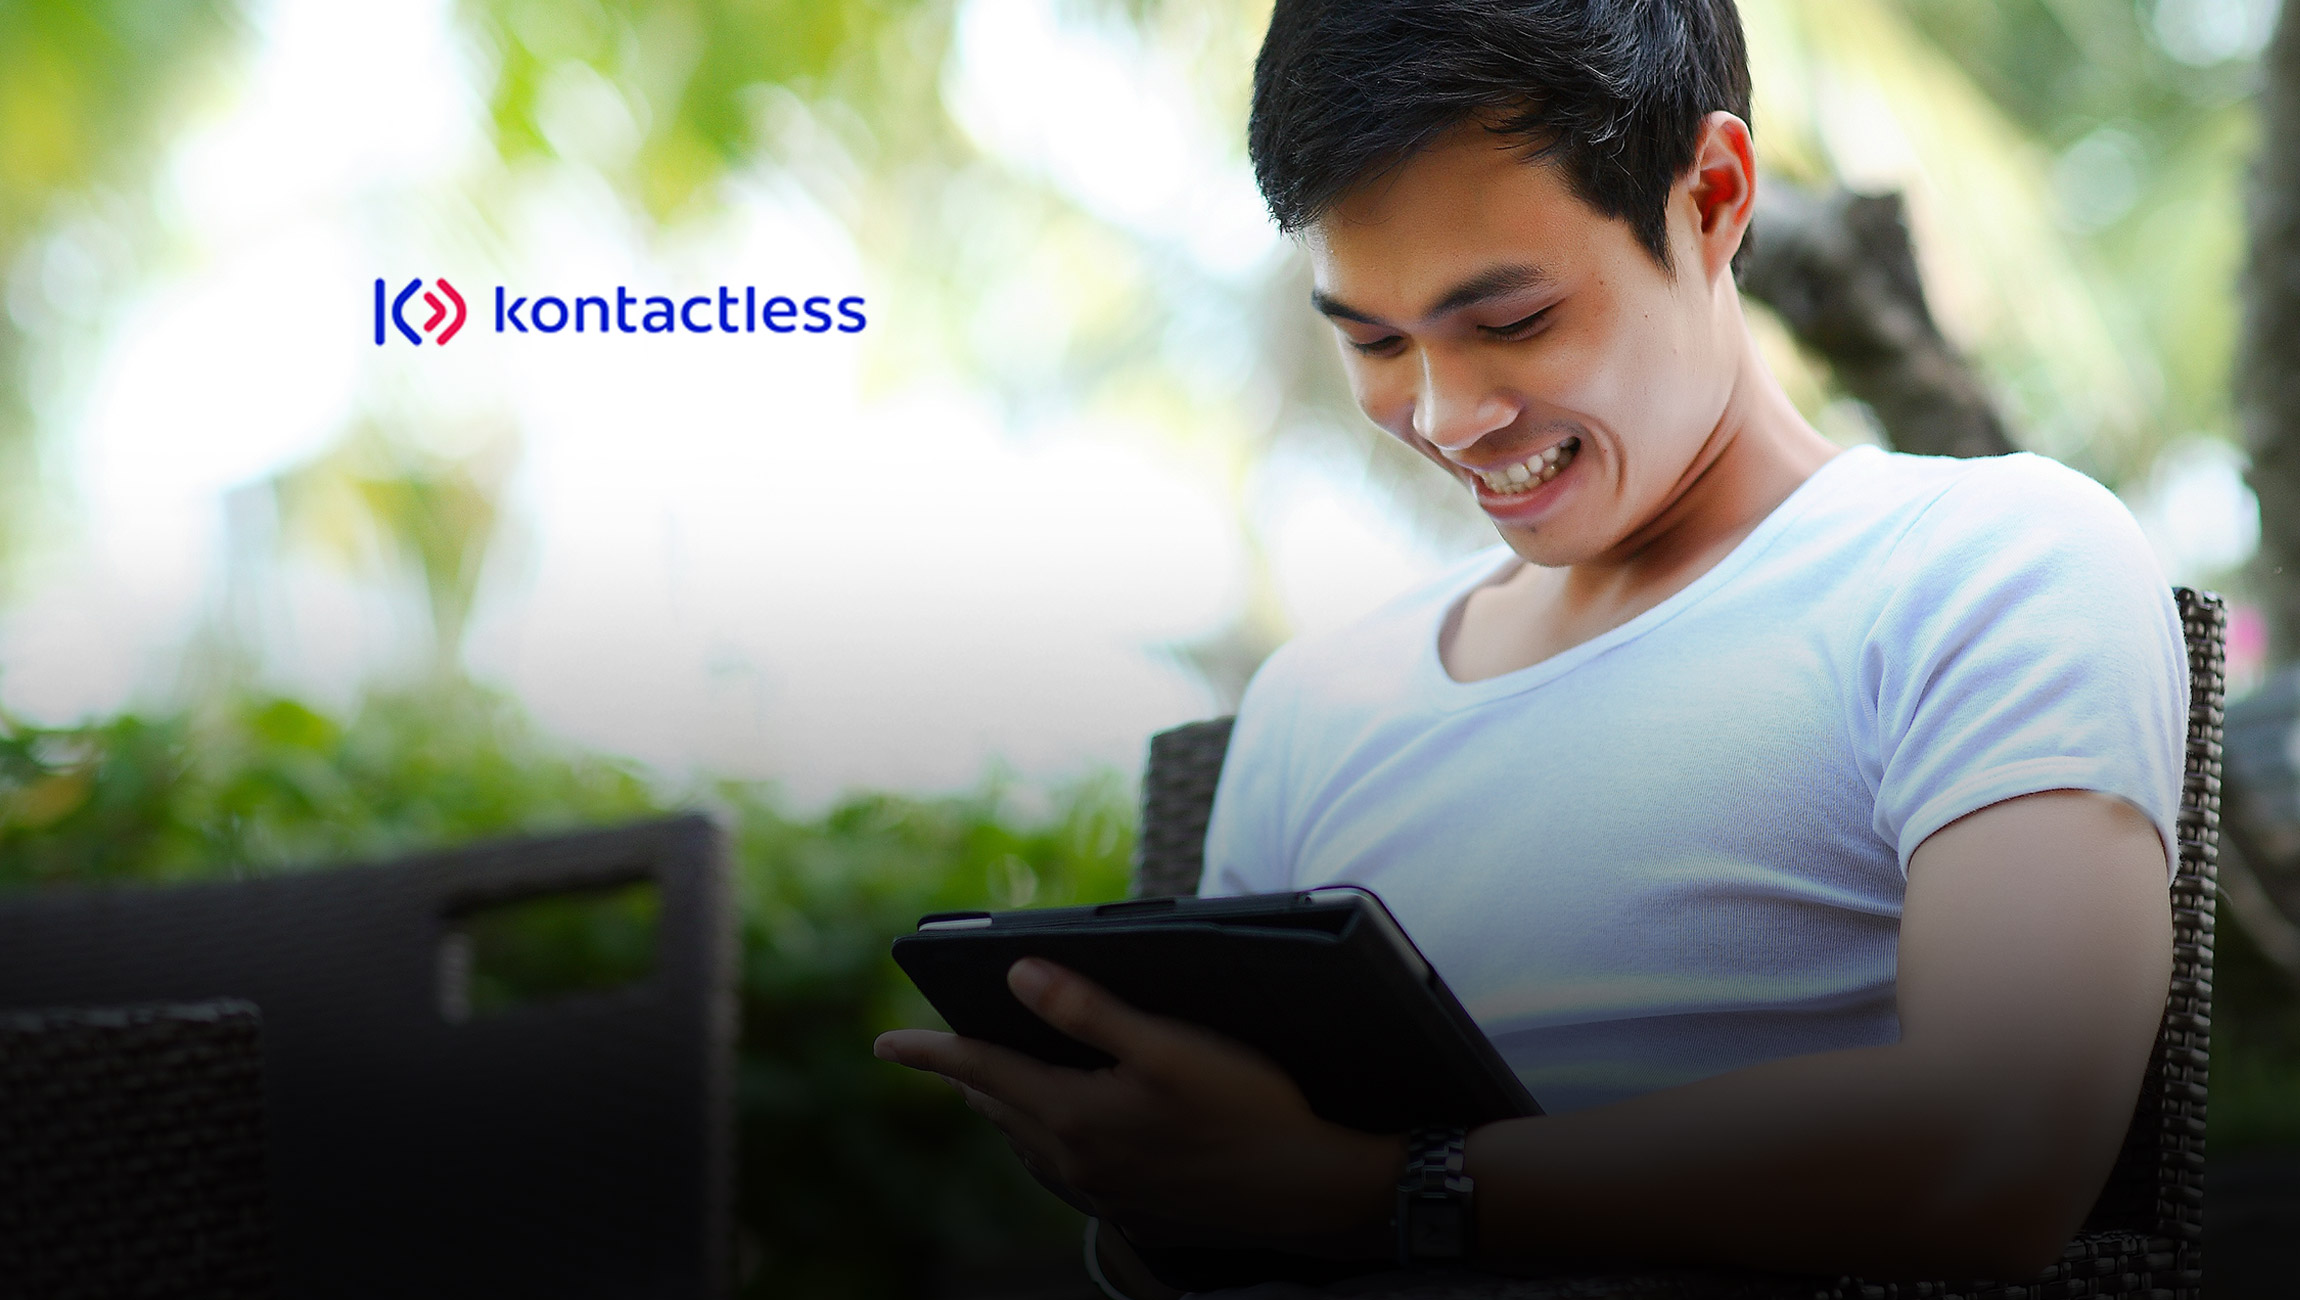 Contactless Technology Provider, Kontactless™ Sees Strong Hospitality Industry Adoption Amidst COVID-19 Pandemic